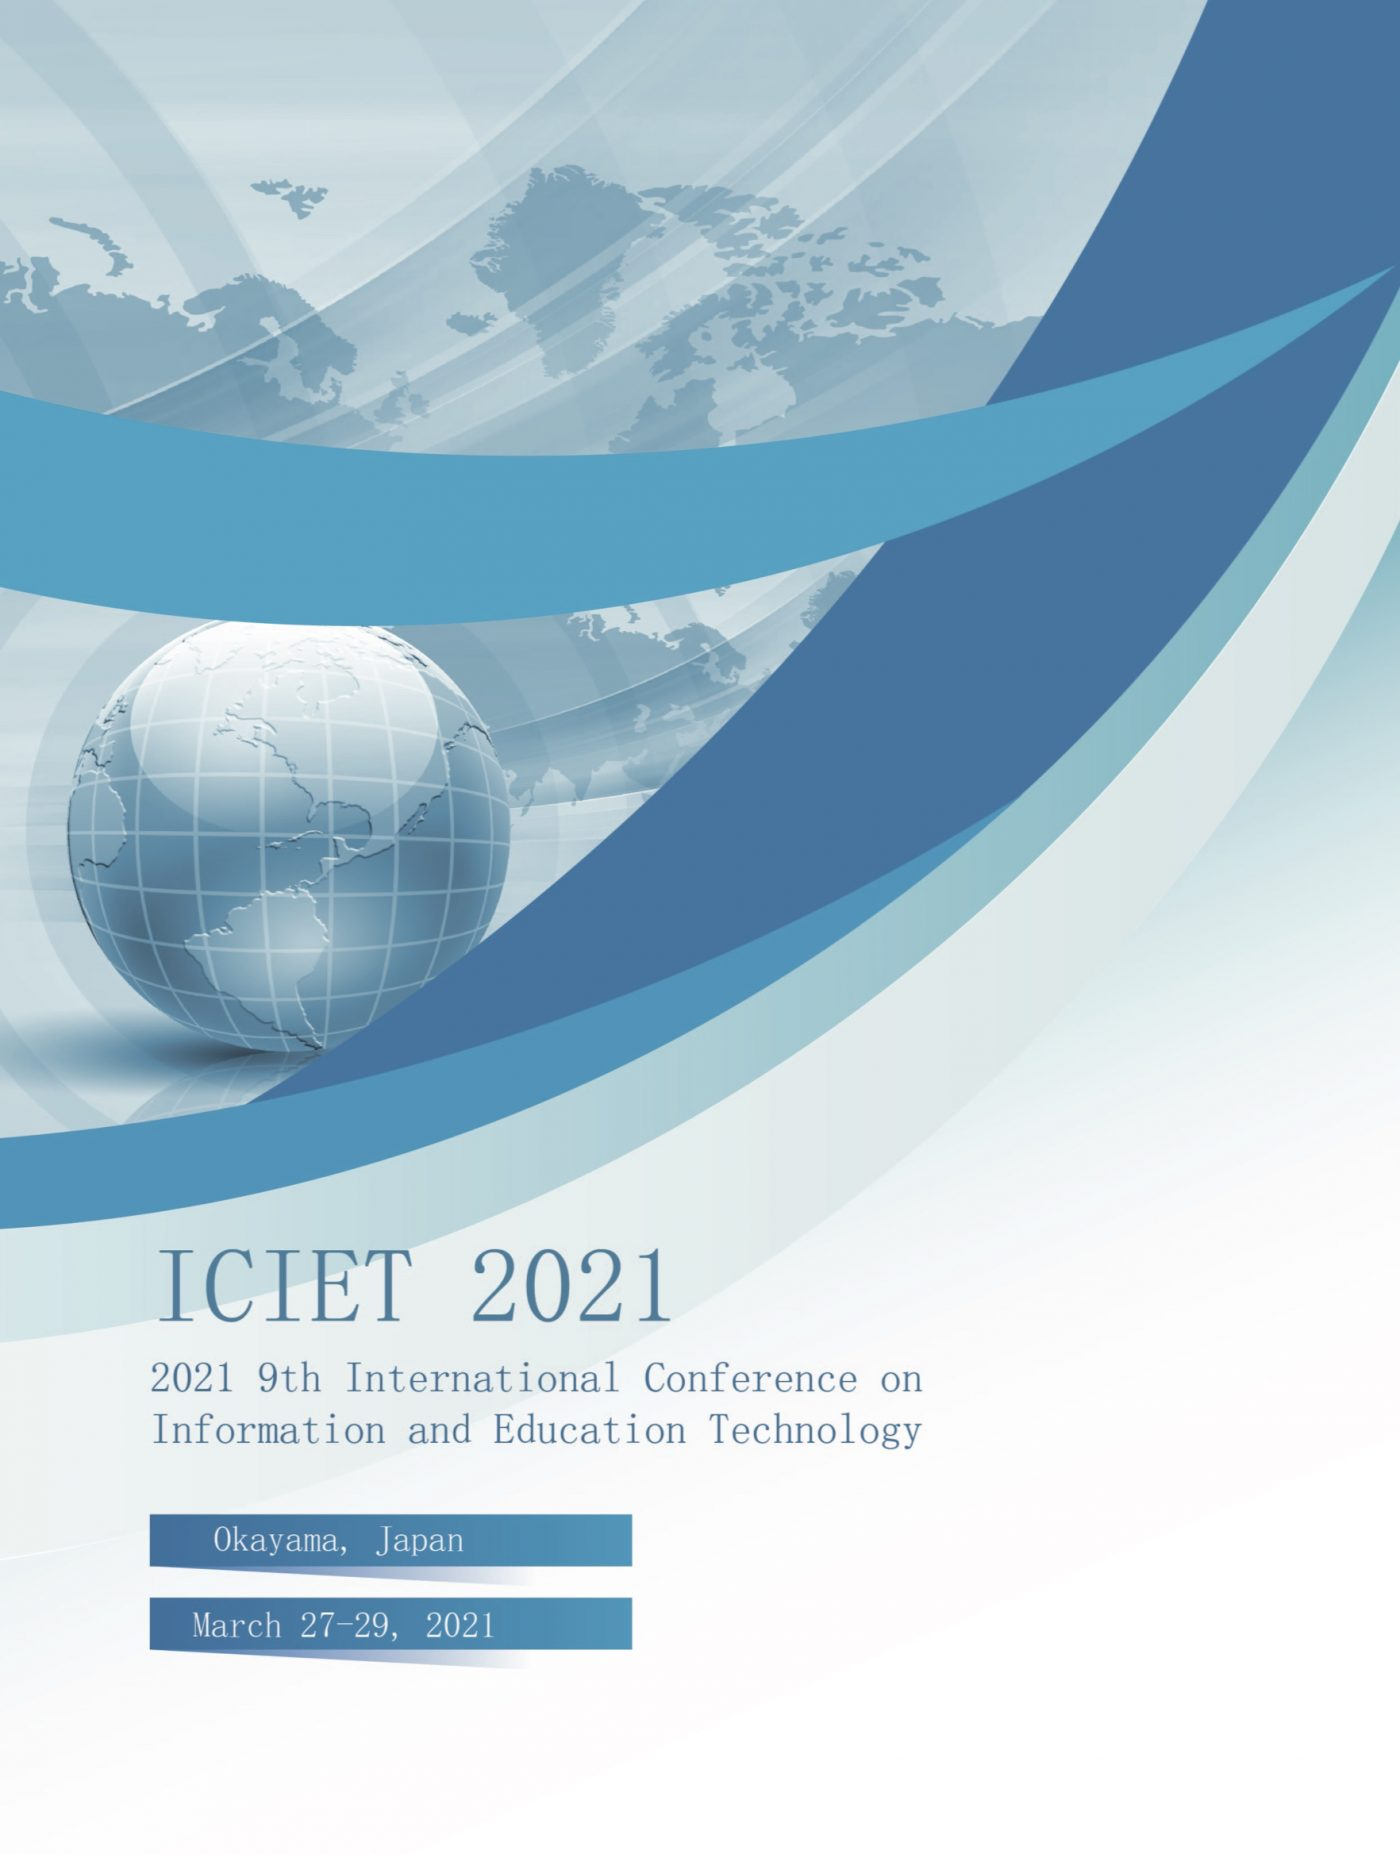 9th International Conference on Information and Education Technology ICIET 2021 Proceedings